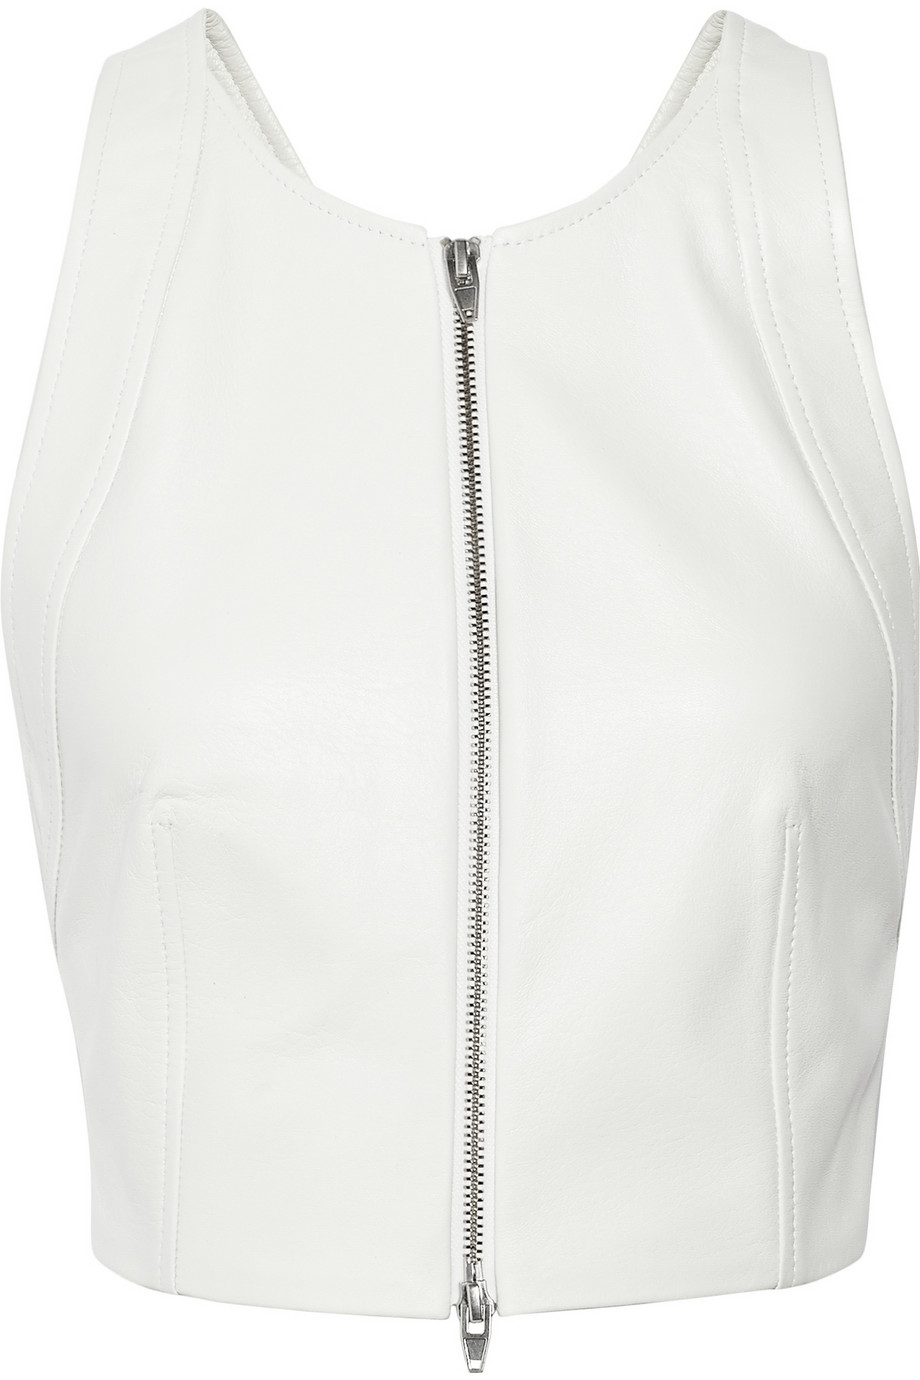 T by Alexander Wang Leather cross-back leather top – 55% at THE OUTNET.COM